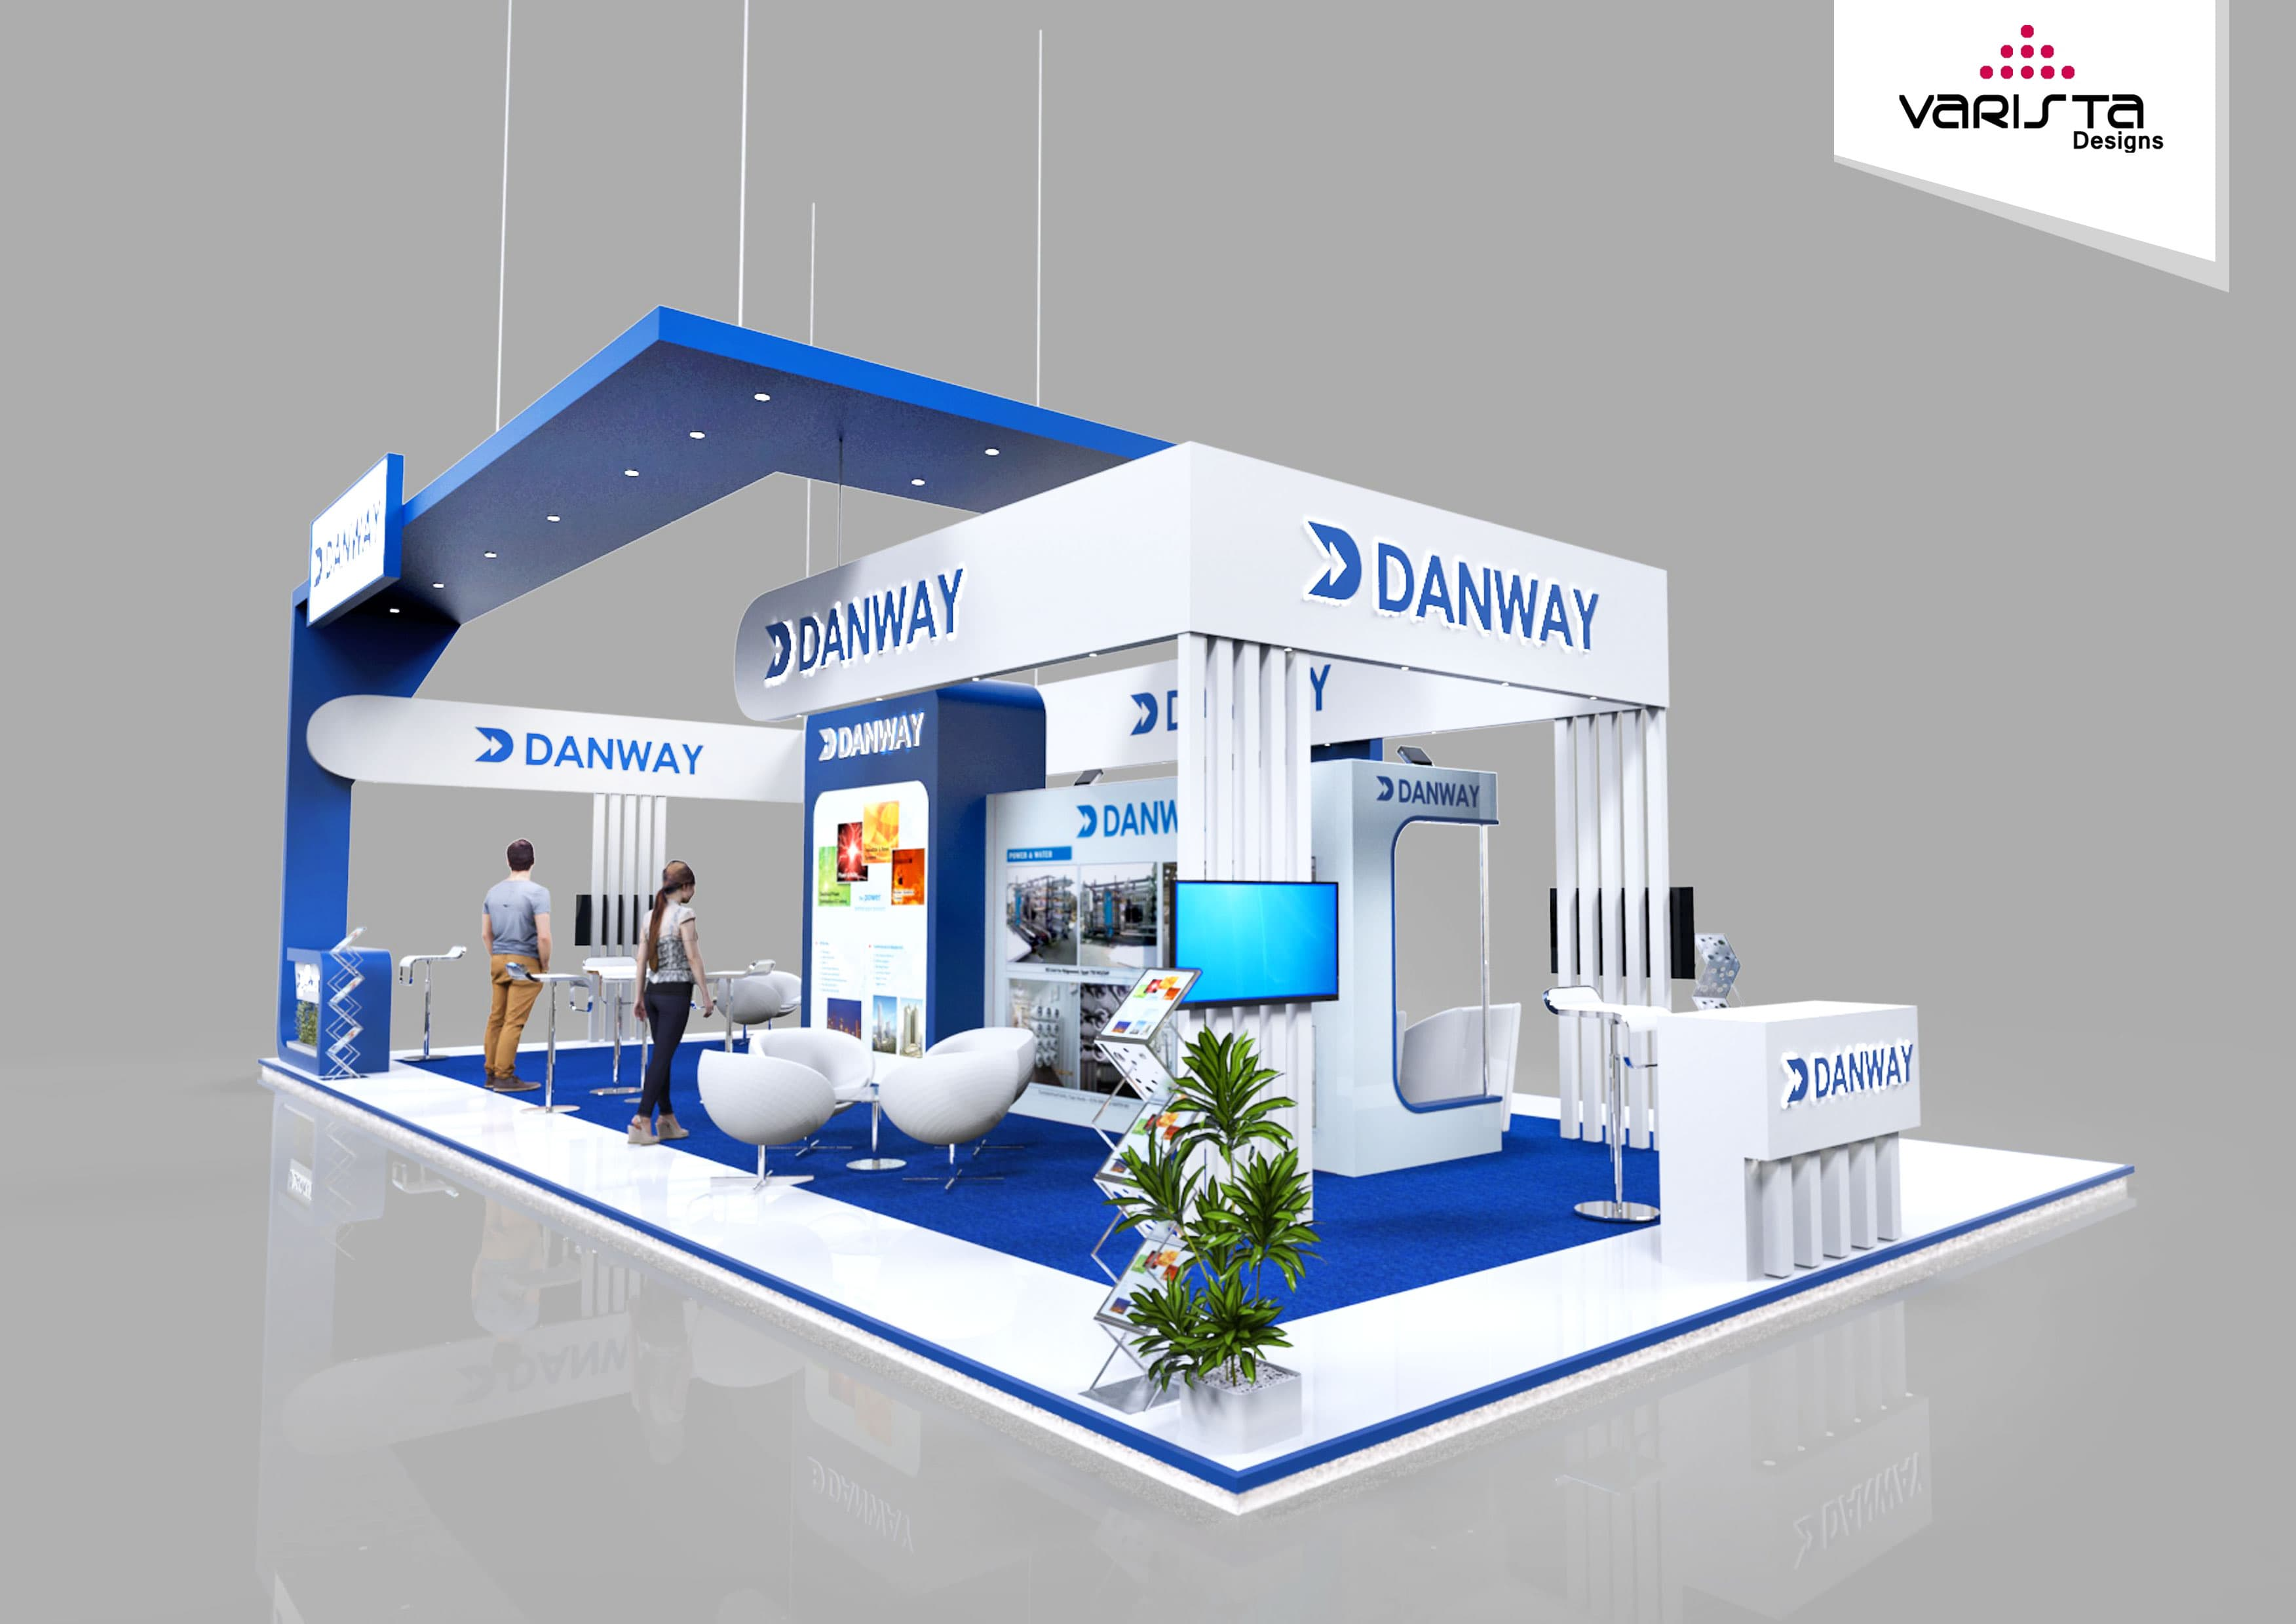 Exhibition Stand Design Images : Exhibition stand design proposal for danway be a part of